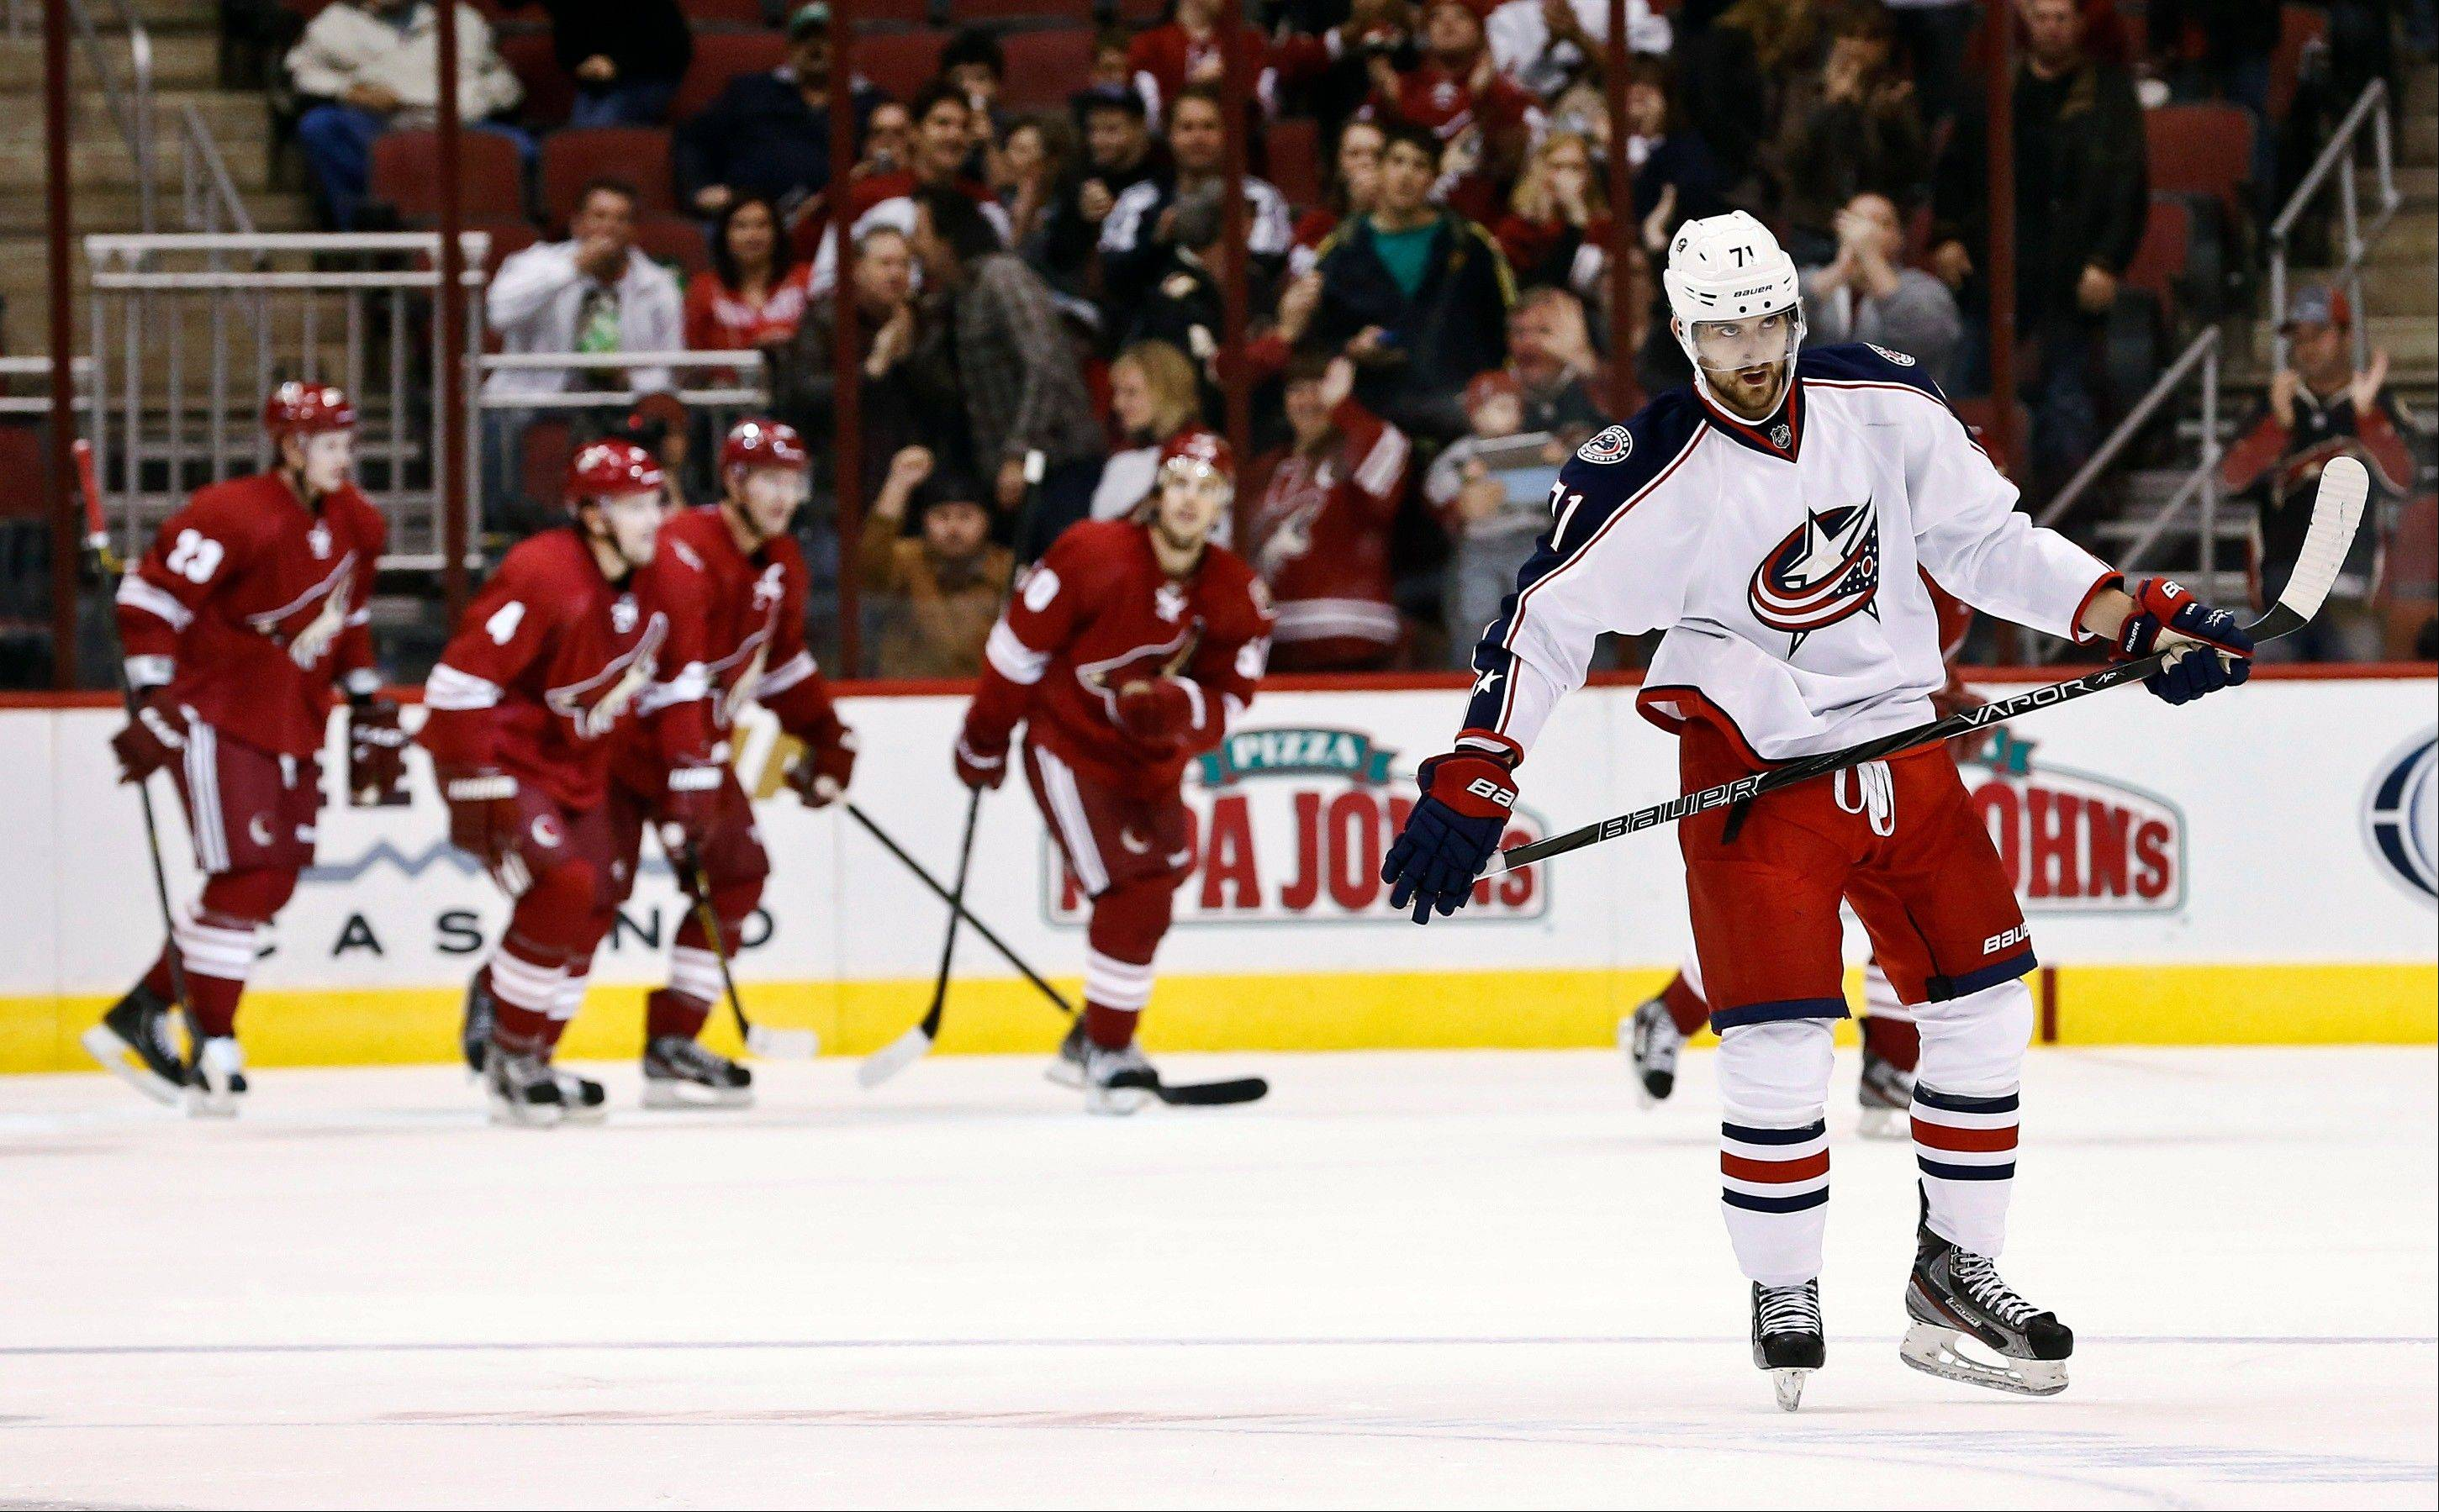 Columbus Blue Jackets' Nick Foligno, right, skates away as the Phoenix Coyotes celebrate a goal by Steve Sullivan during the second period in an NHL hockey game, Wednesday, Jan. 23, 2013, in Glendale, Ariz.